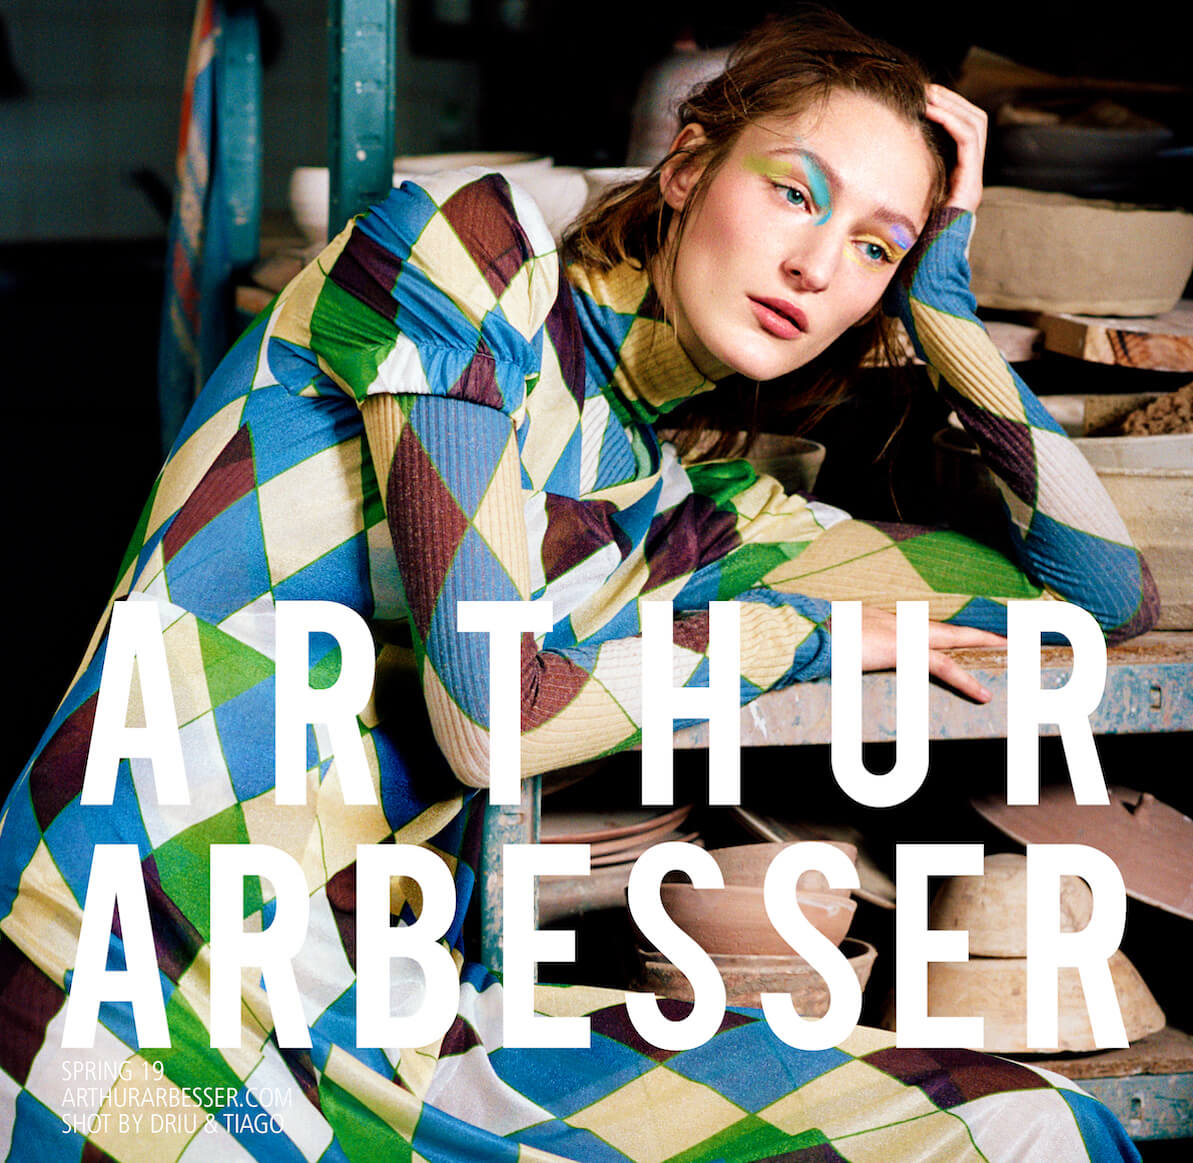 Campaign @arthurarbesser SS19, photo by @driuandtiago